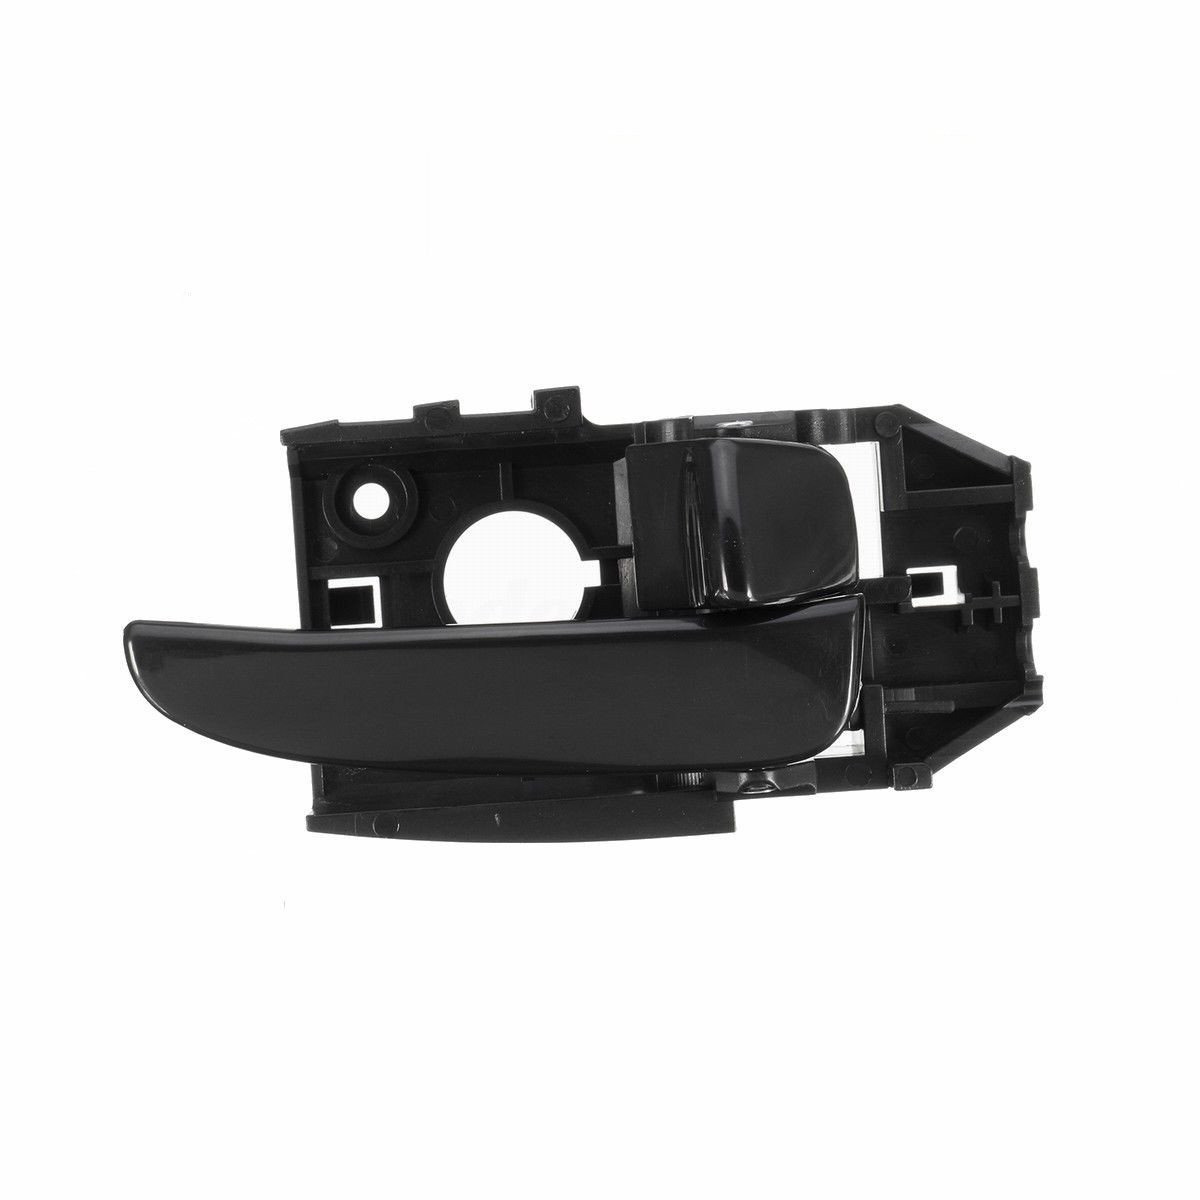 Aupro For 2001 2002 2003 2004 2005 2006 Hyundai Elantra Front Inside Interior Door Handle Right Passenger Side Black Replacement